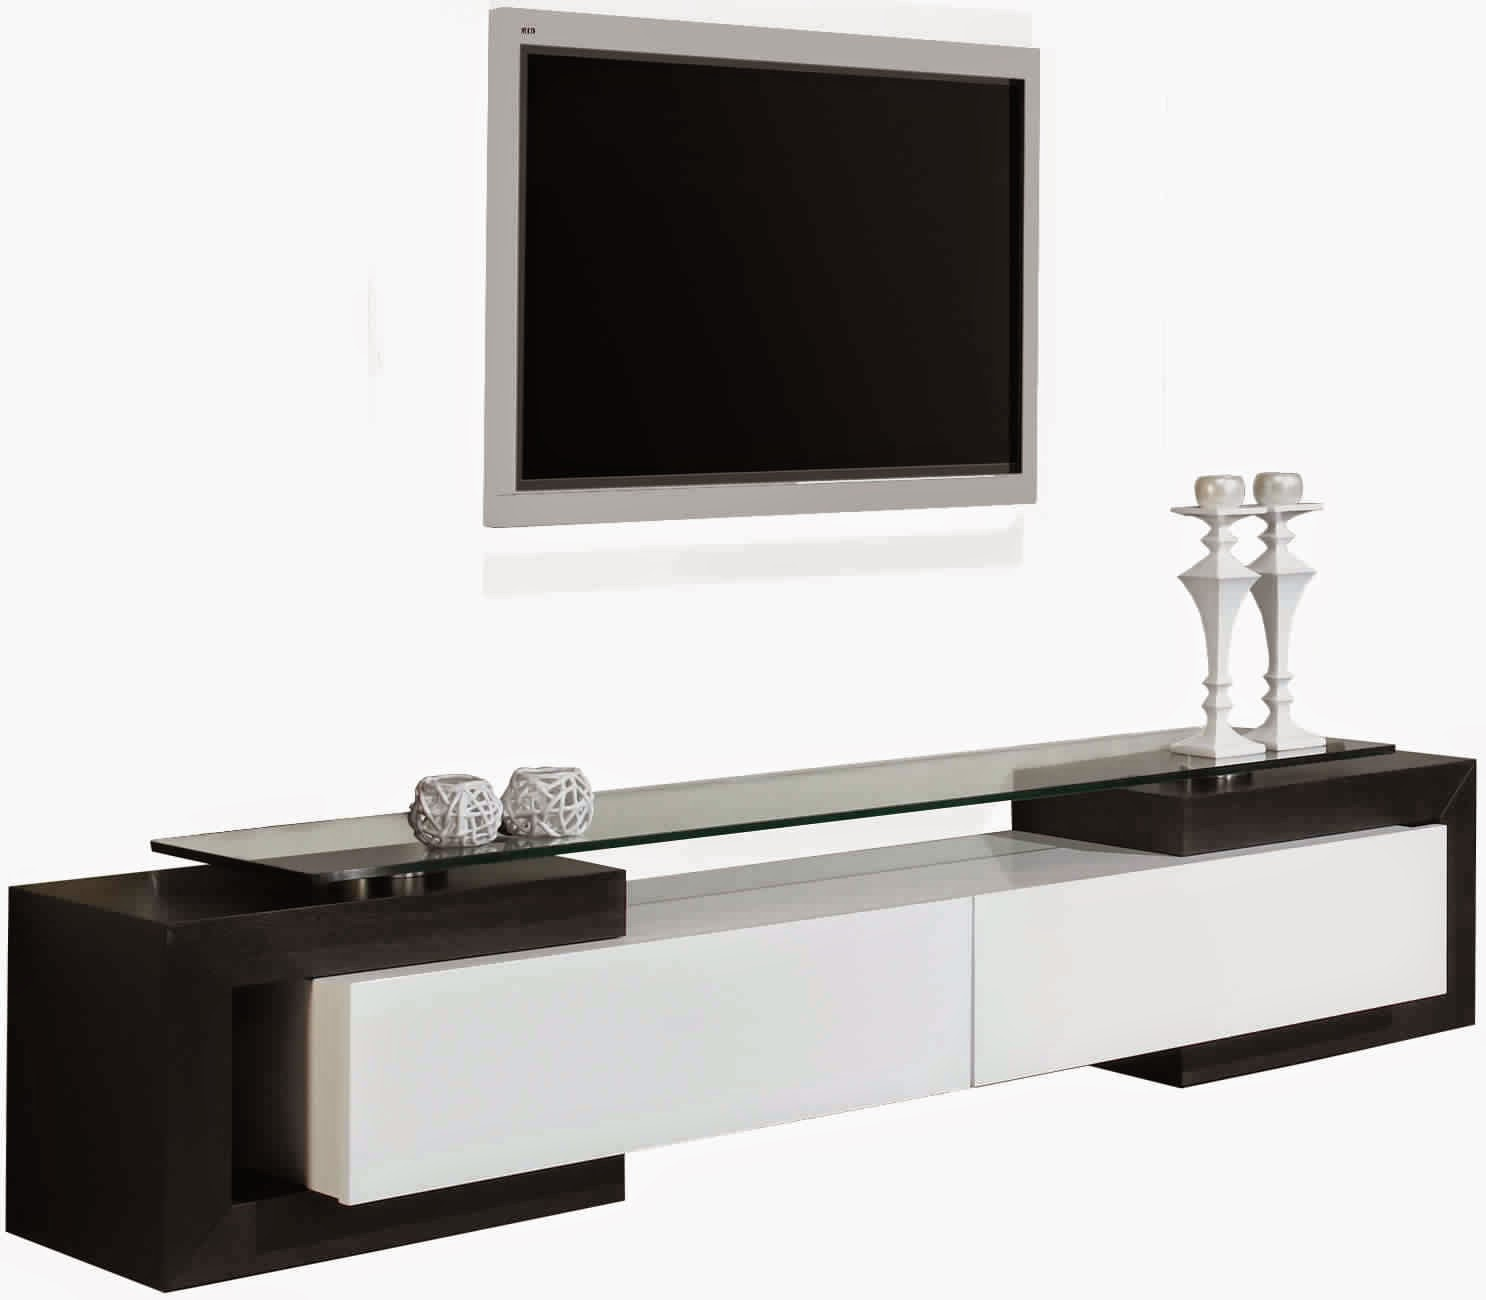 meuble tele noir et blanc 10 id es de d coration int rieure french decor. Black Bedroom Furniture Sets. Home Design Ideas